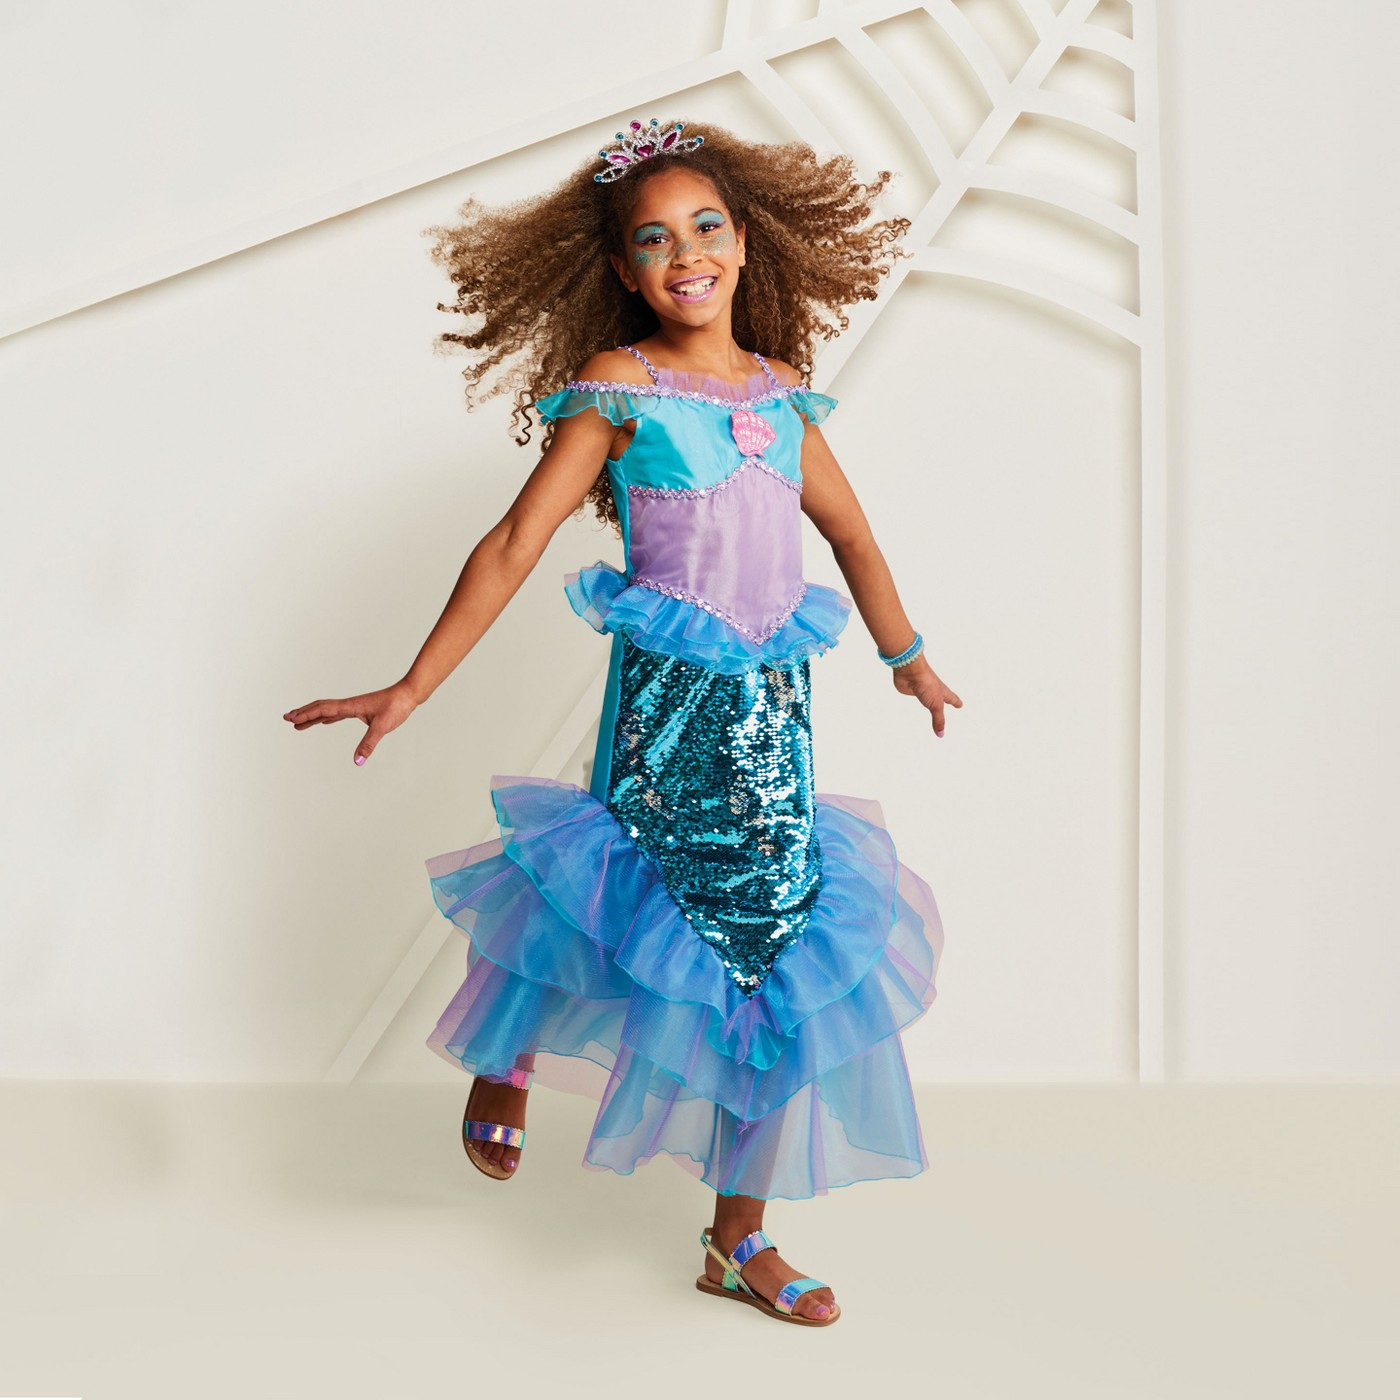 Girls' Deluxe 2-Sided Sequin Mermaid Halloween Costume - Hyde and Eek! Boutique™ - image 1 of 4